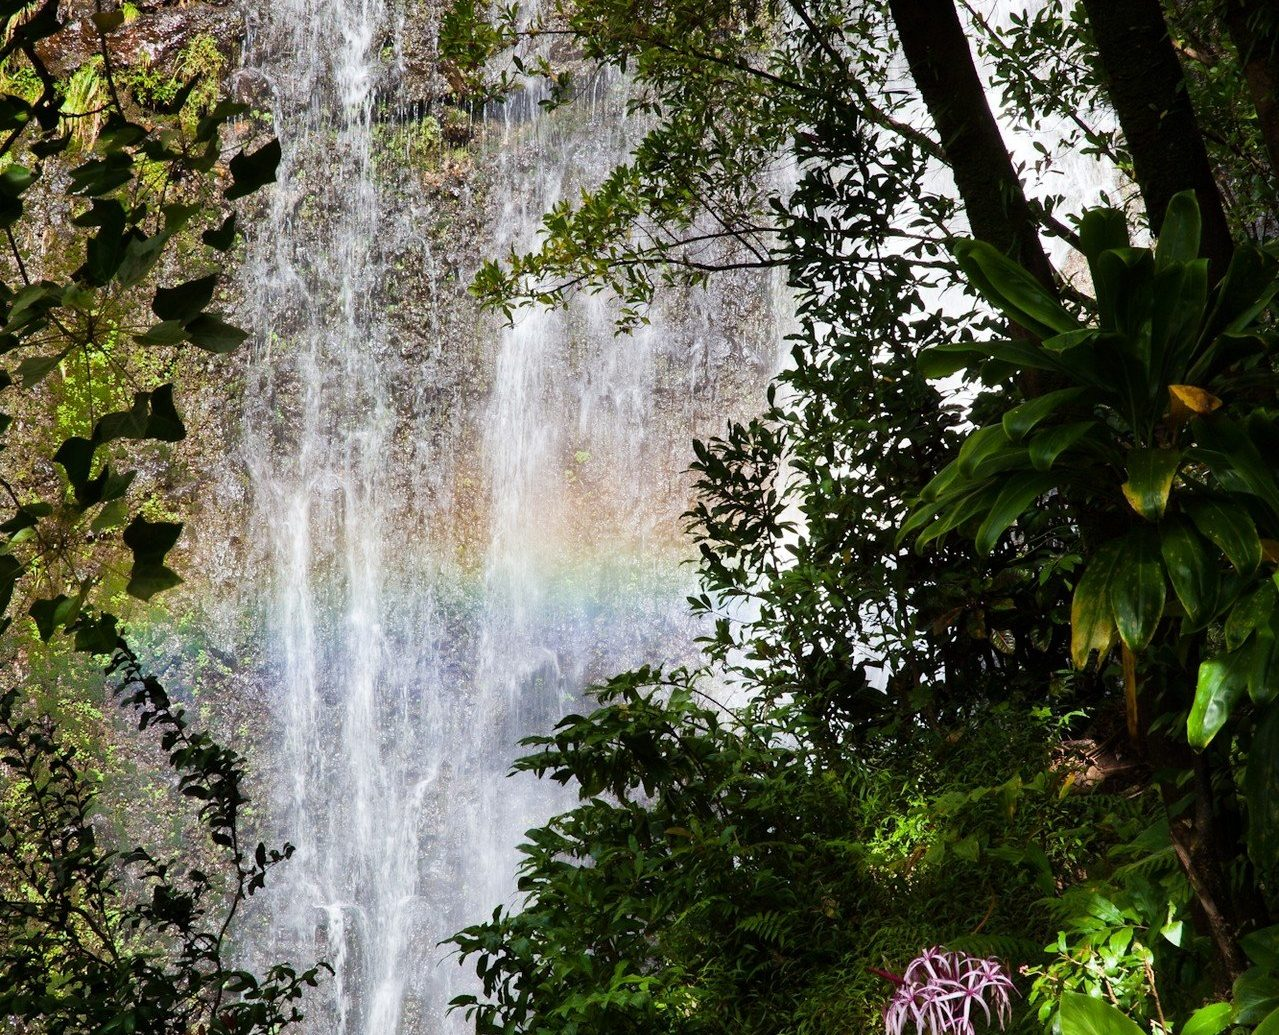 plants rainbow Romance Trip Ideas water Waterfall tree outdoor Nature habitat vegetation body of water natural environment rainforest water feature Forest botany leaf Jungle woodland sunlight flower surrounded